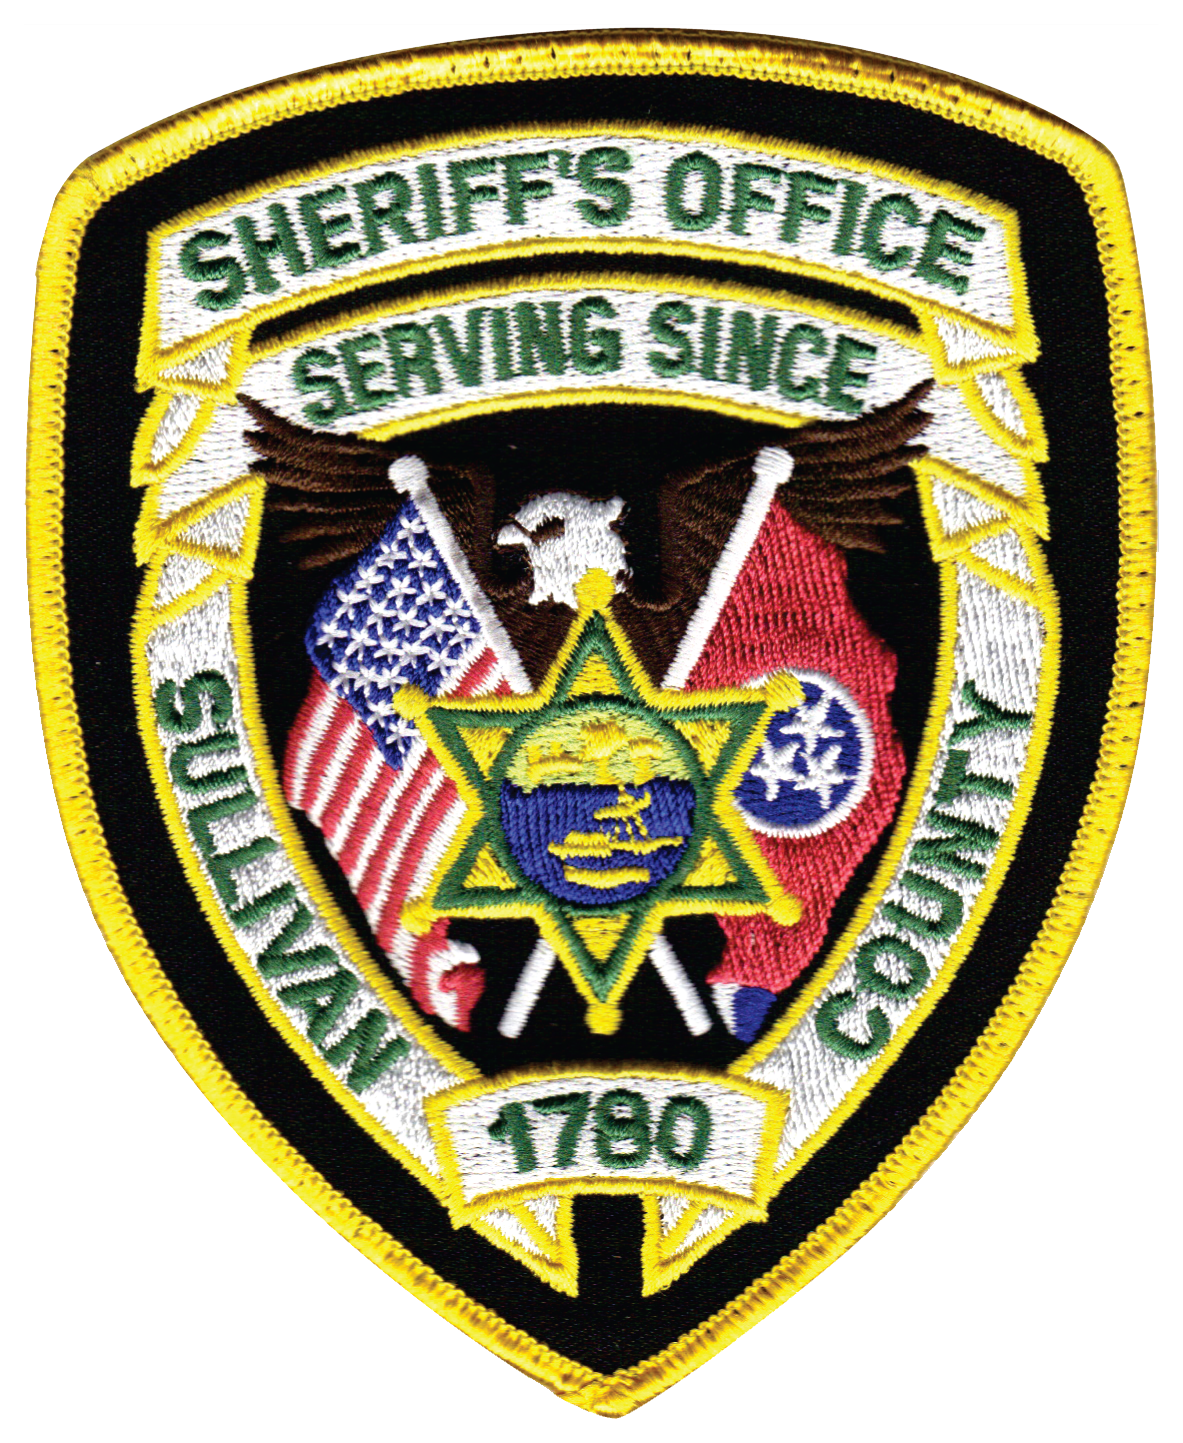 Sullivan County Sheriff's Office: 2014